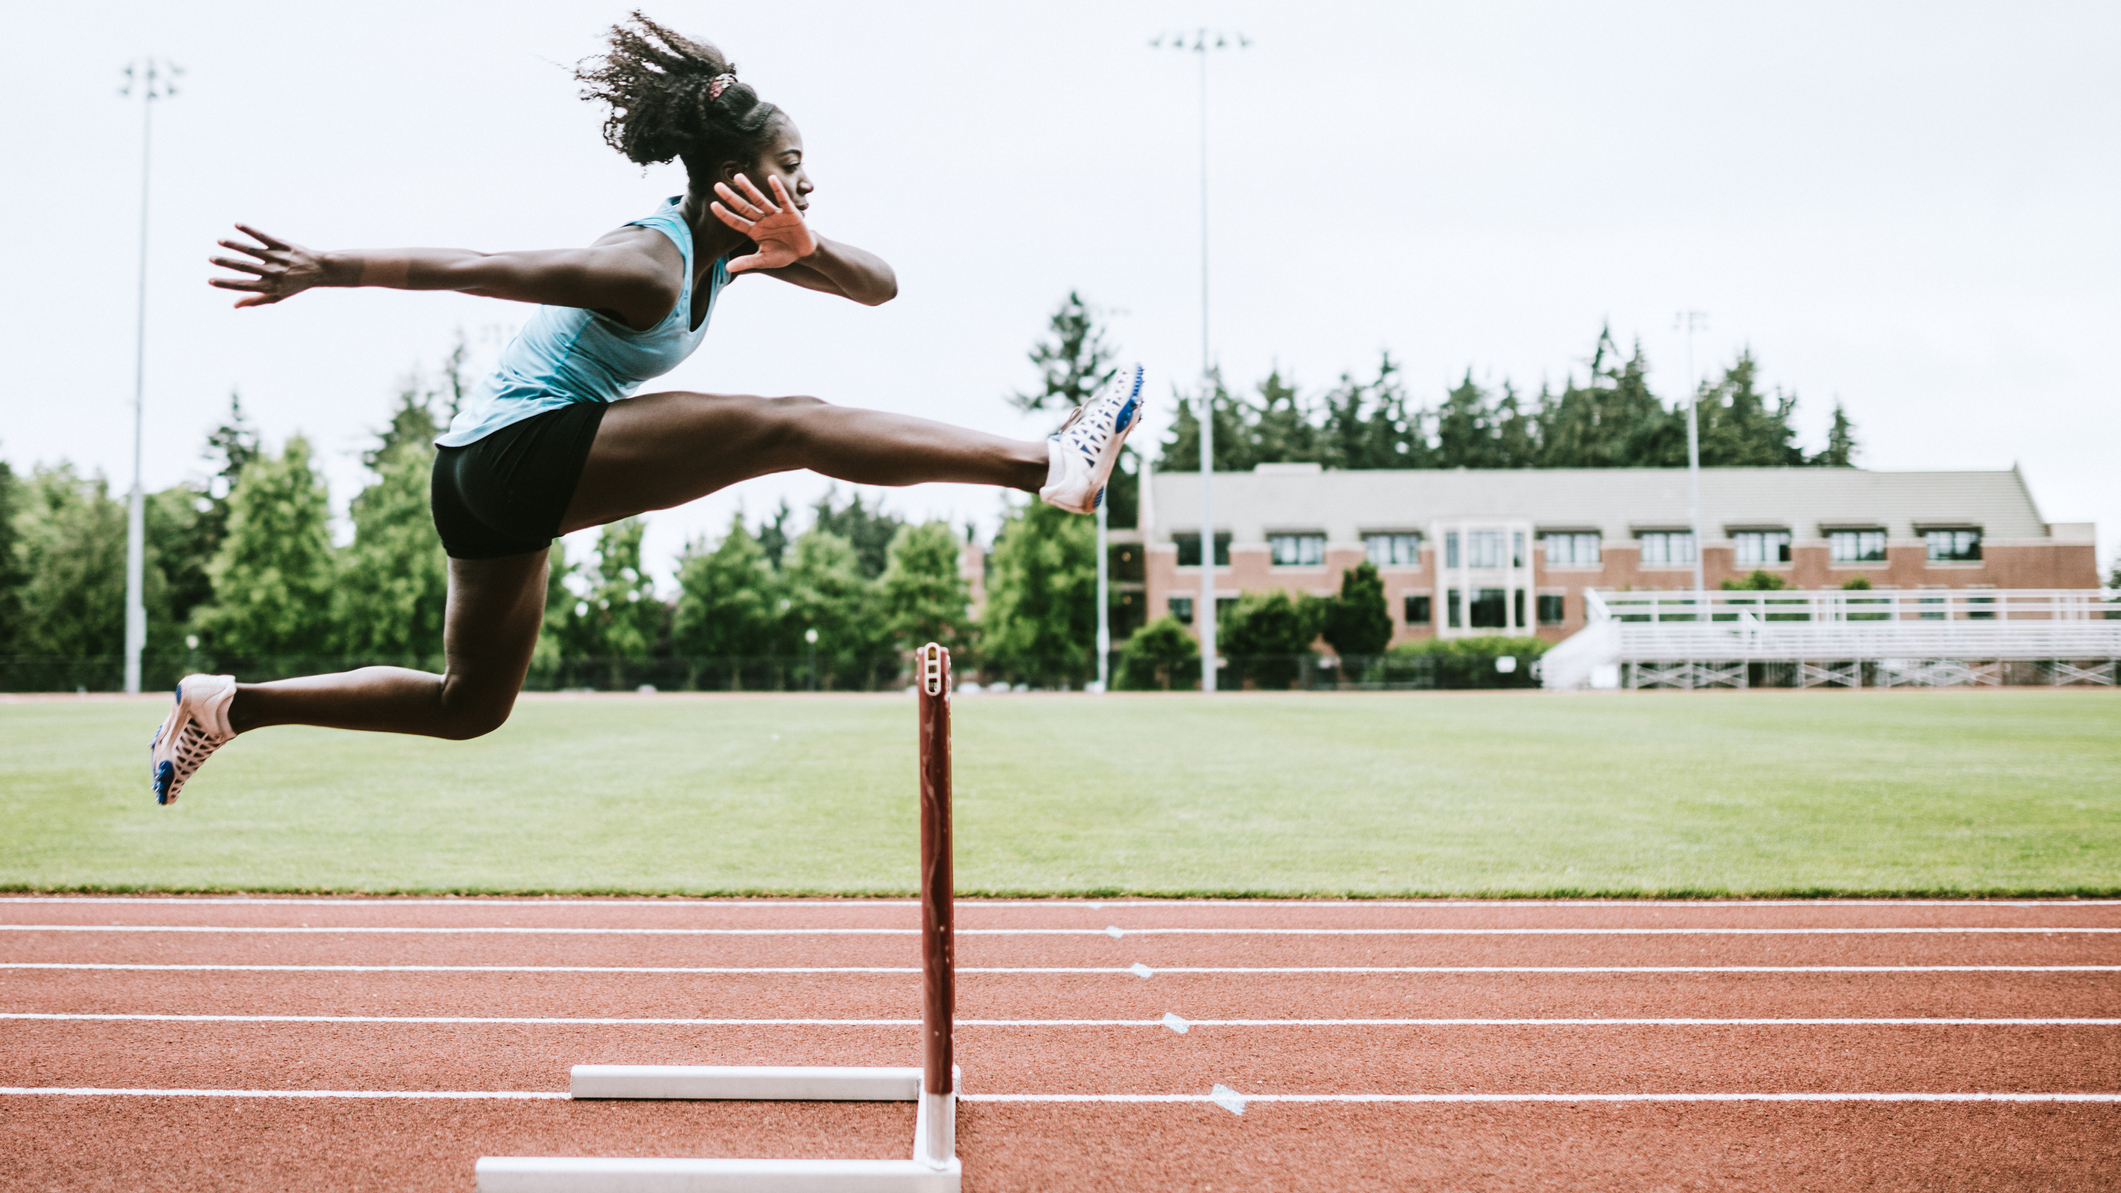 An athlete jumps a hurdle